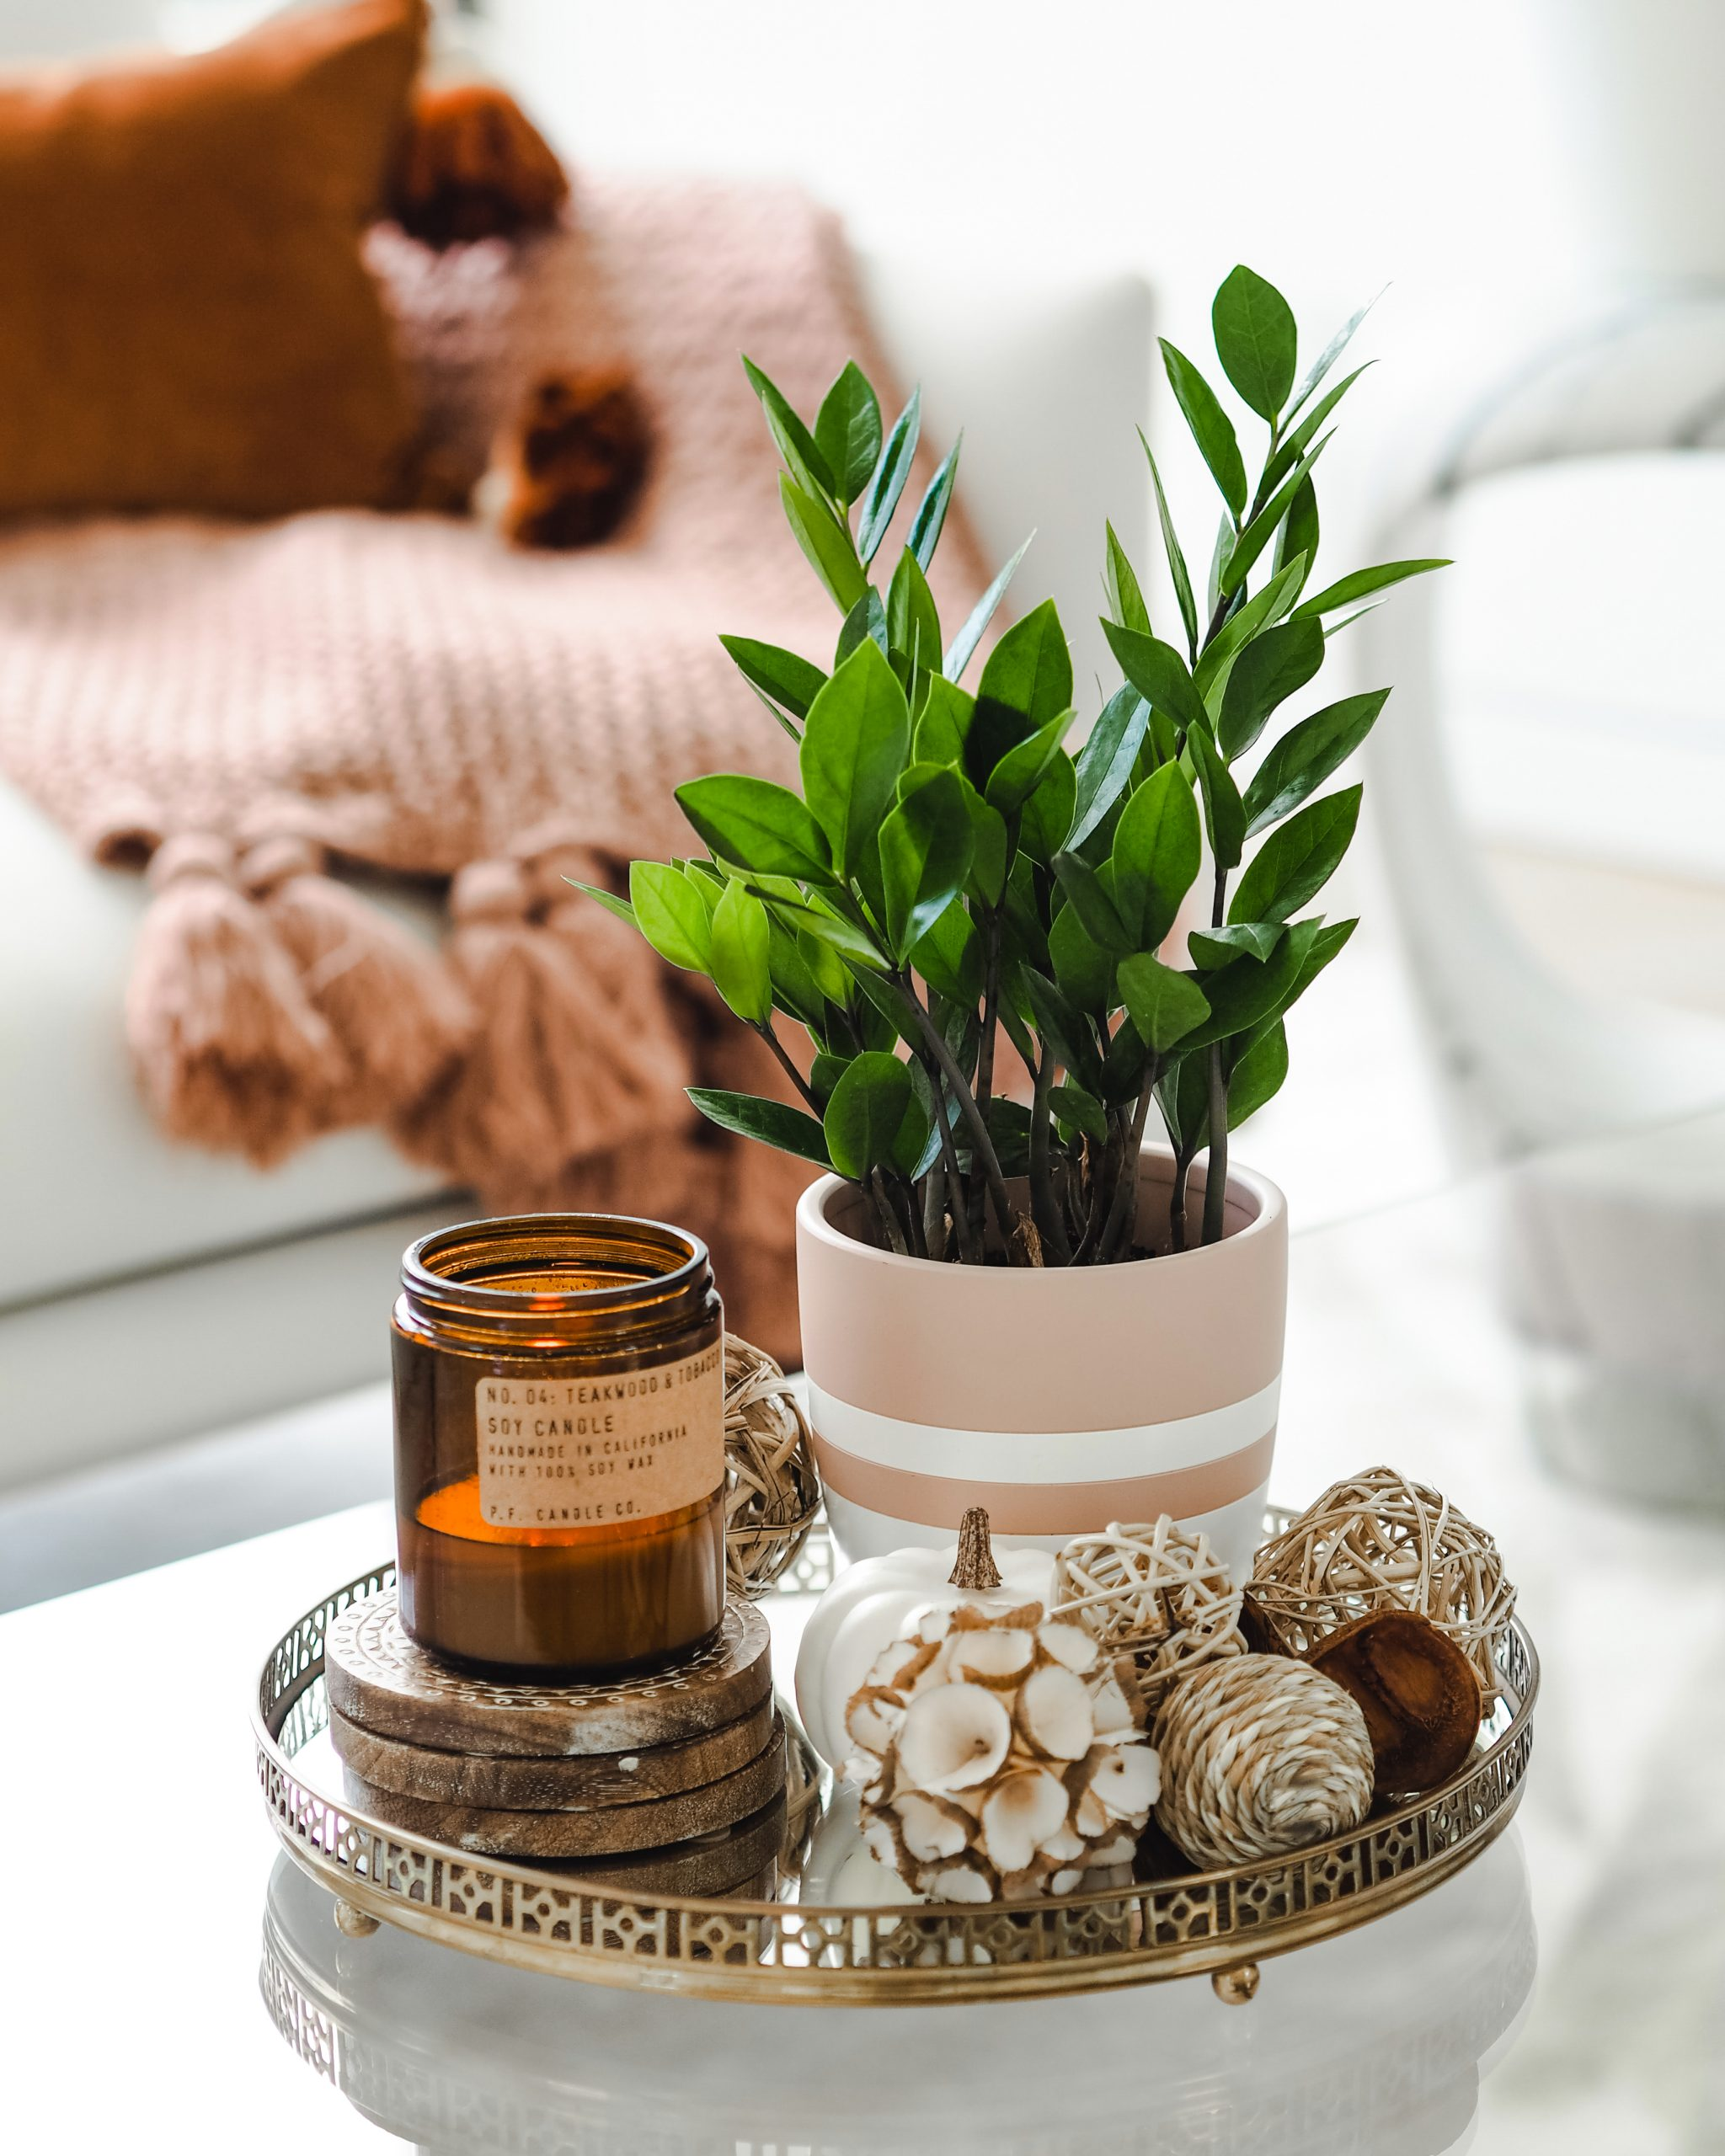 Image portrays a cozy setting with a plant, candle and decorating accessories on a copy table and blanket on a couch in the background.